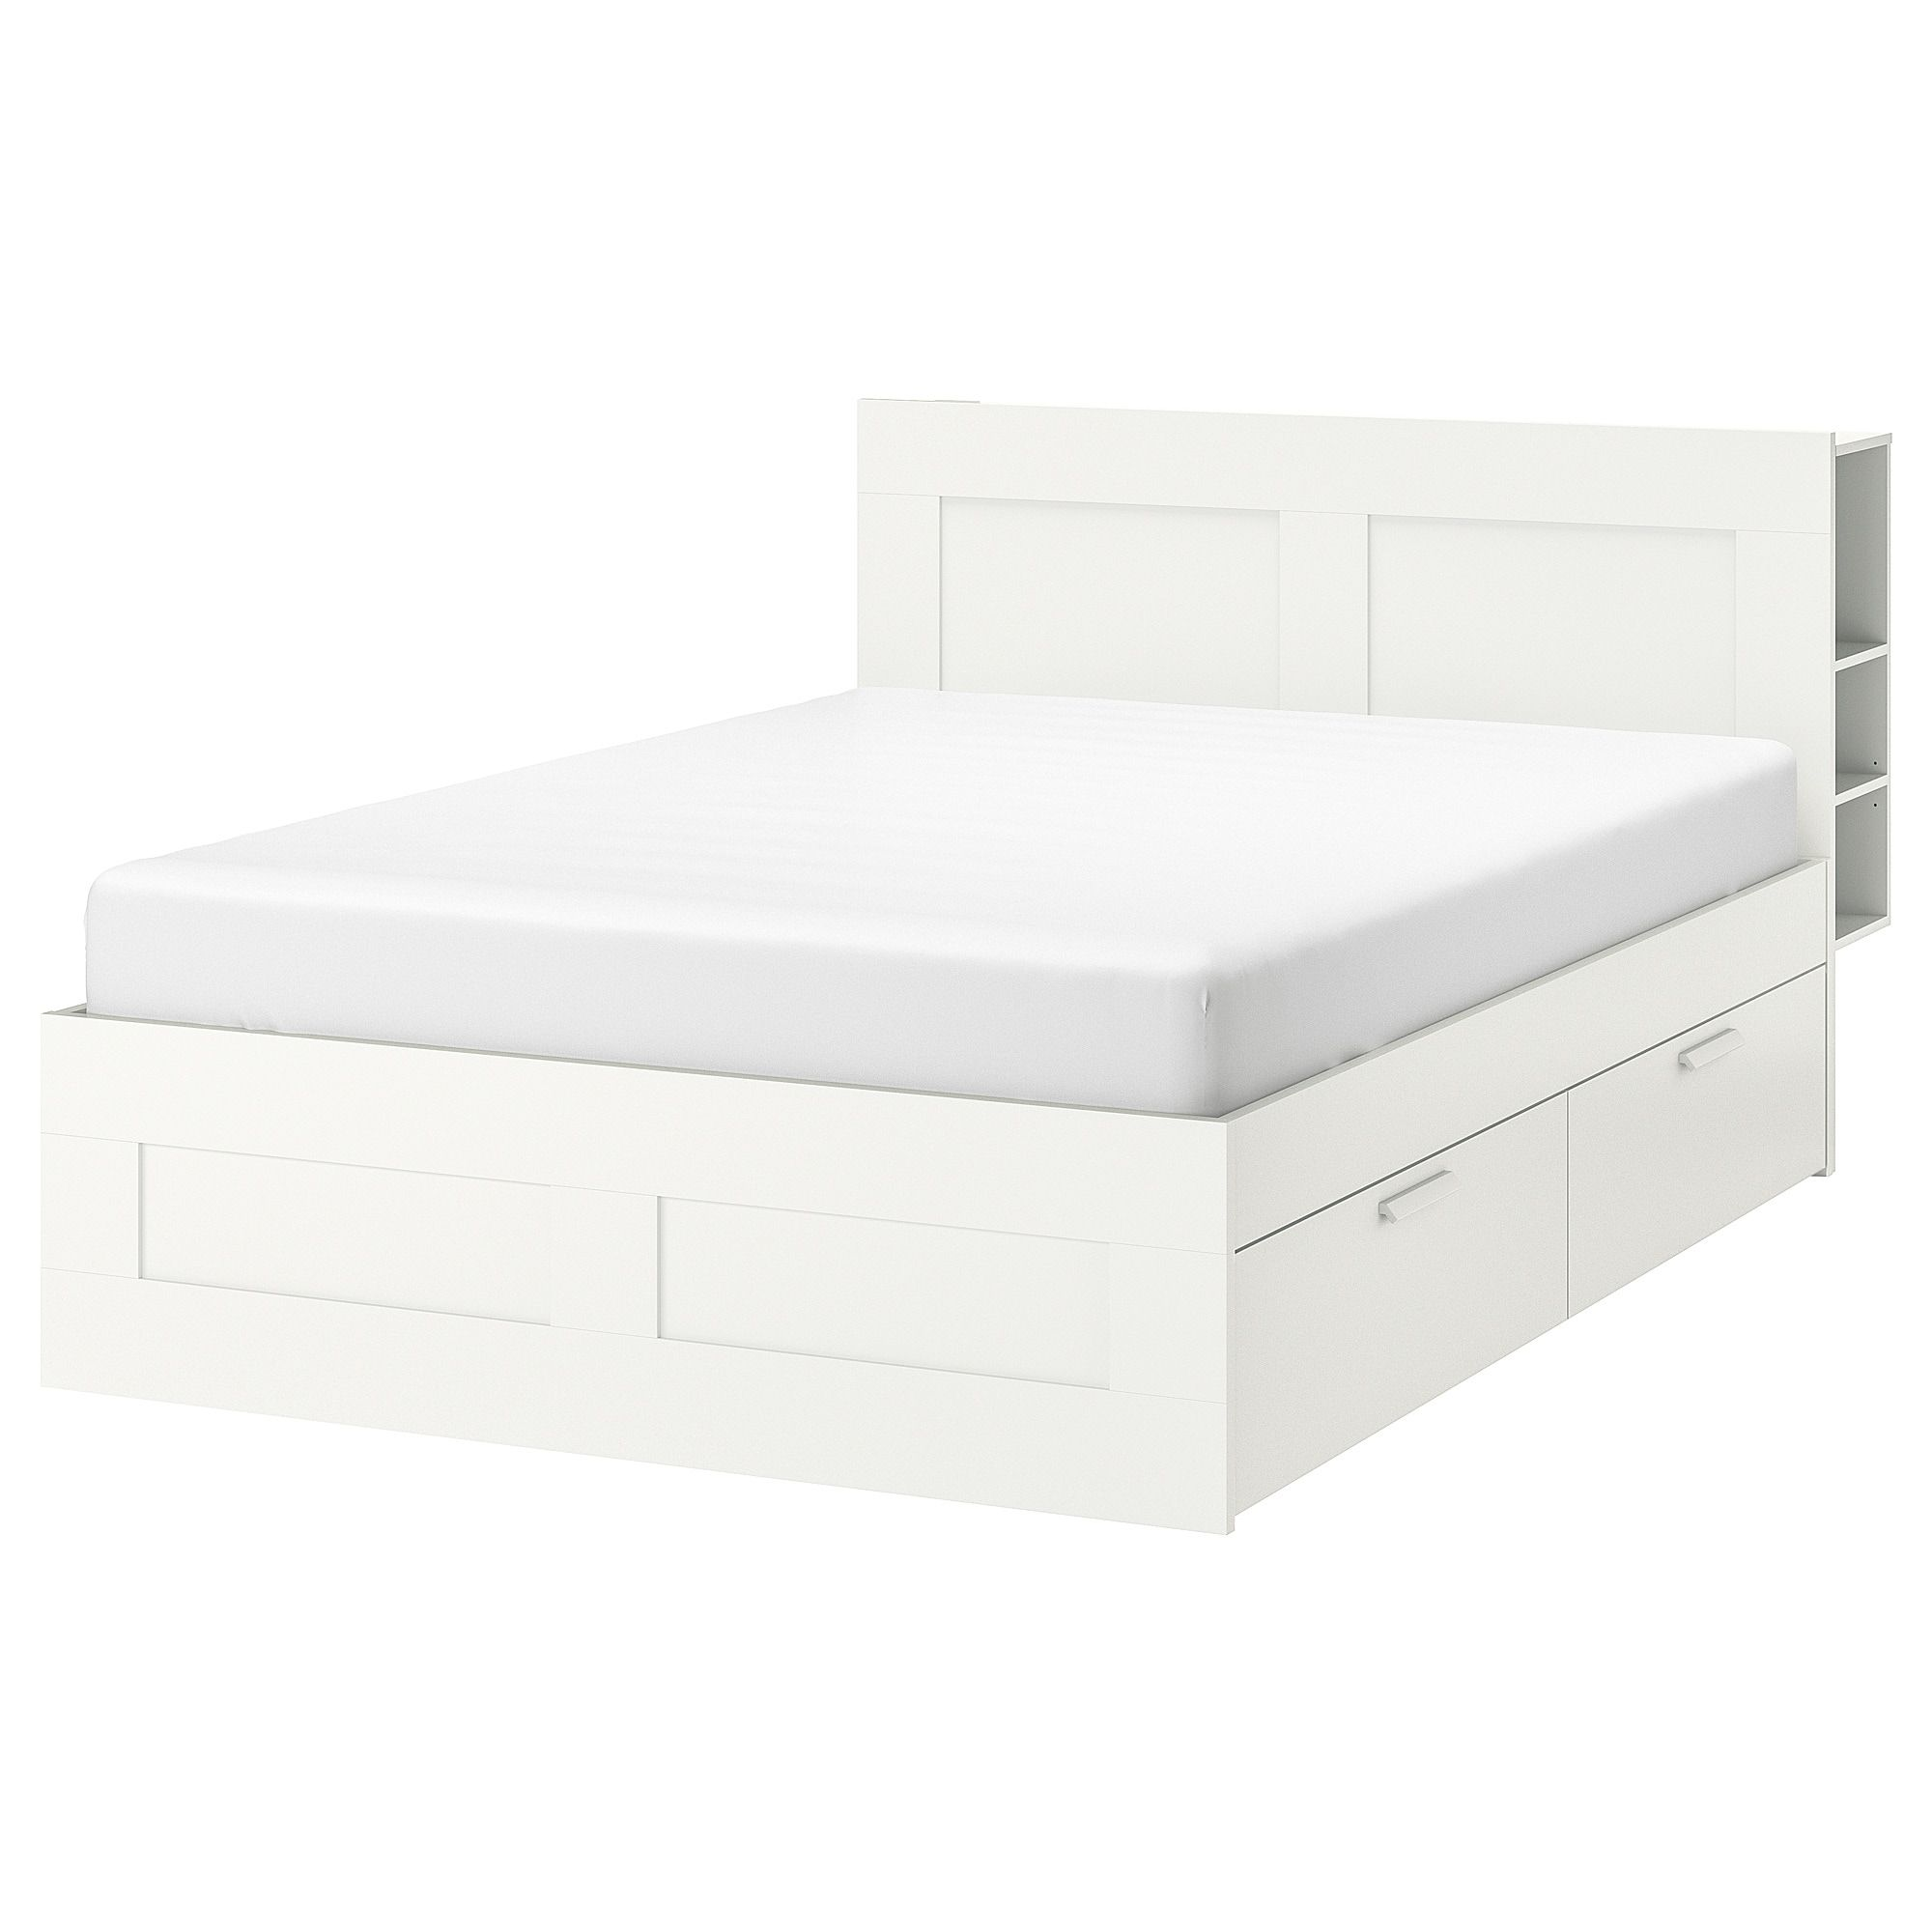 Brimnes Bed Frame With Storage Headboard White Lonset King